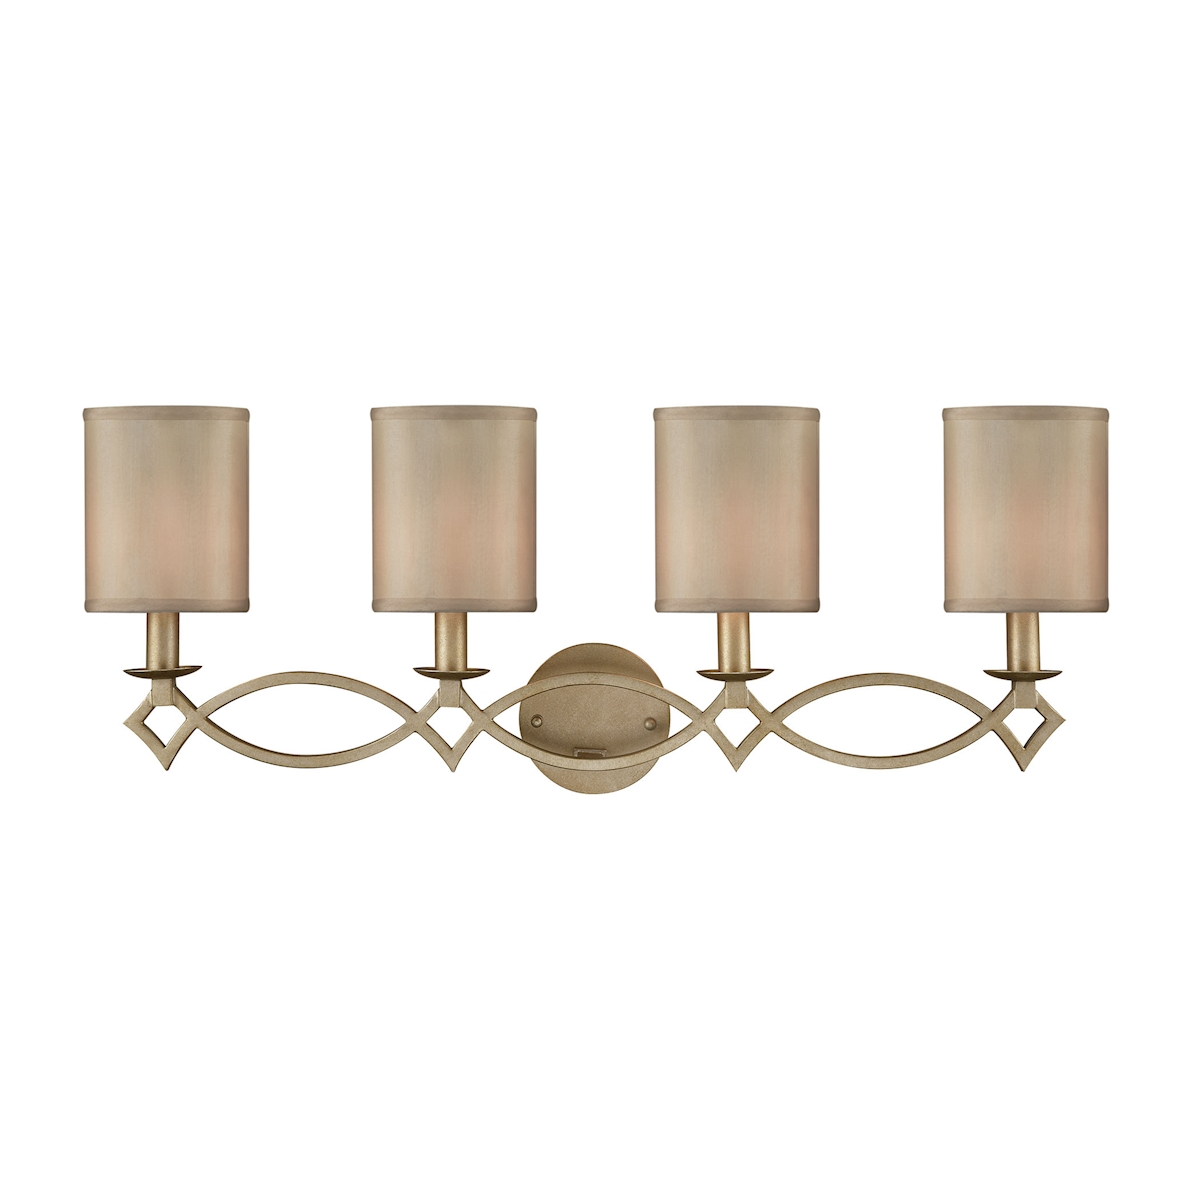 Estonia 4 Light Vanity in Aged Silver with Beige Half-Shades